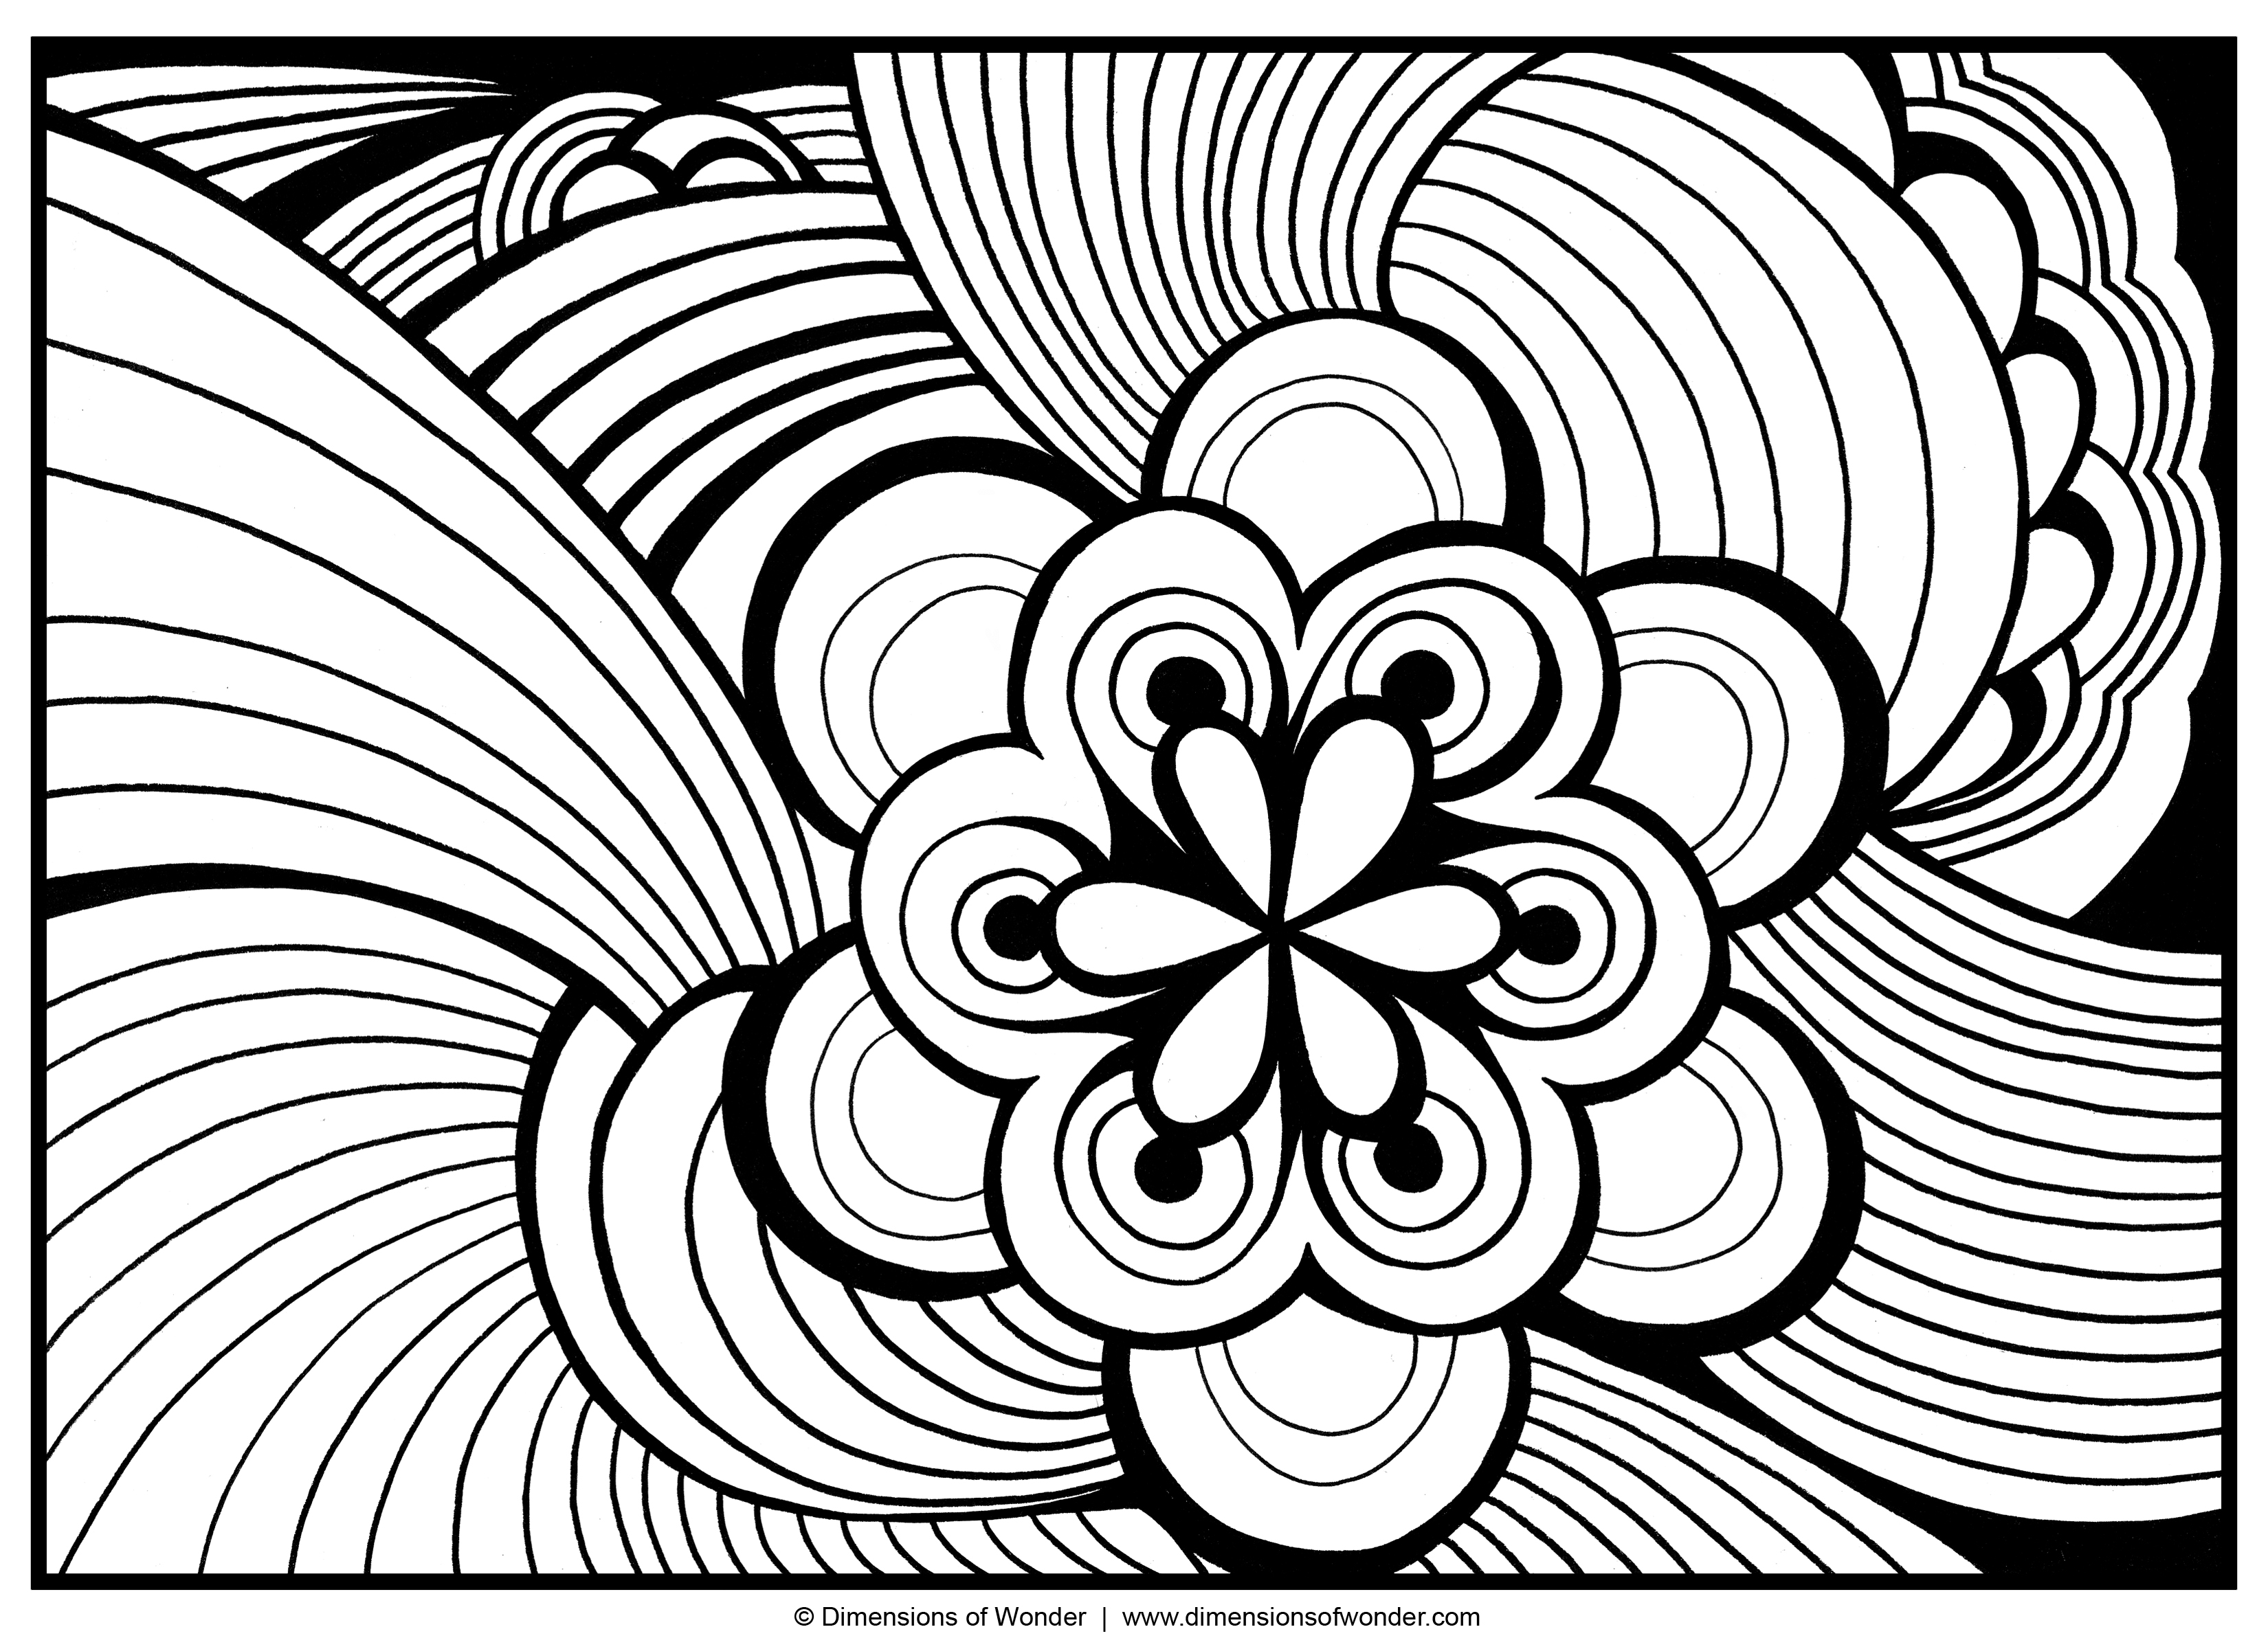 beautiful-abstract coloring pages printable,printable,coloring pages